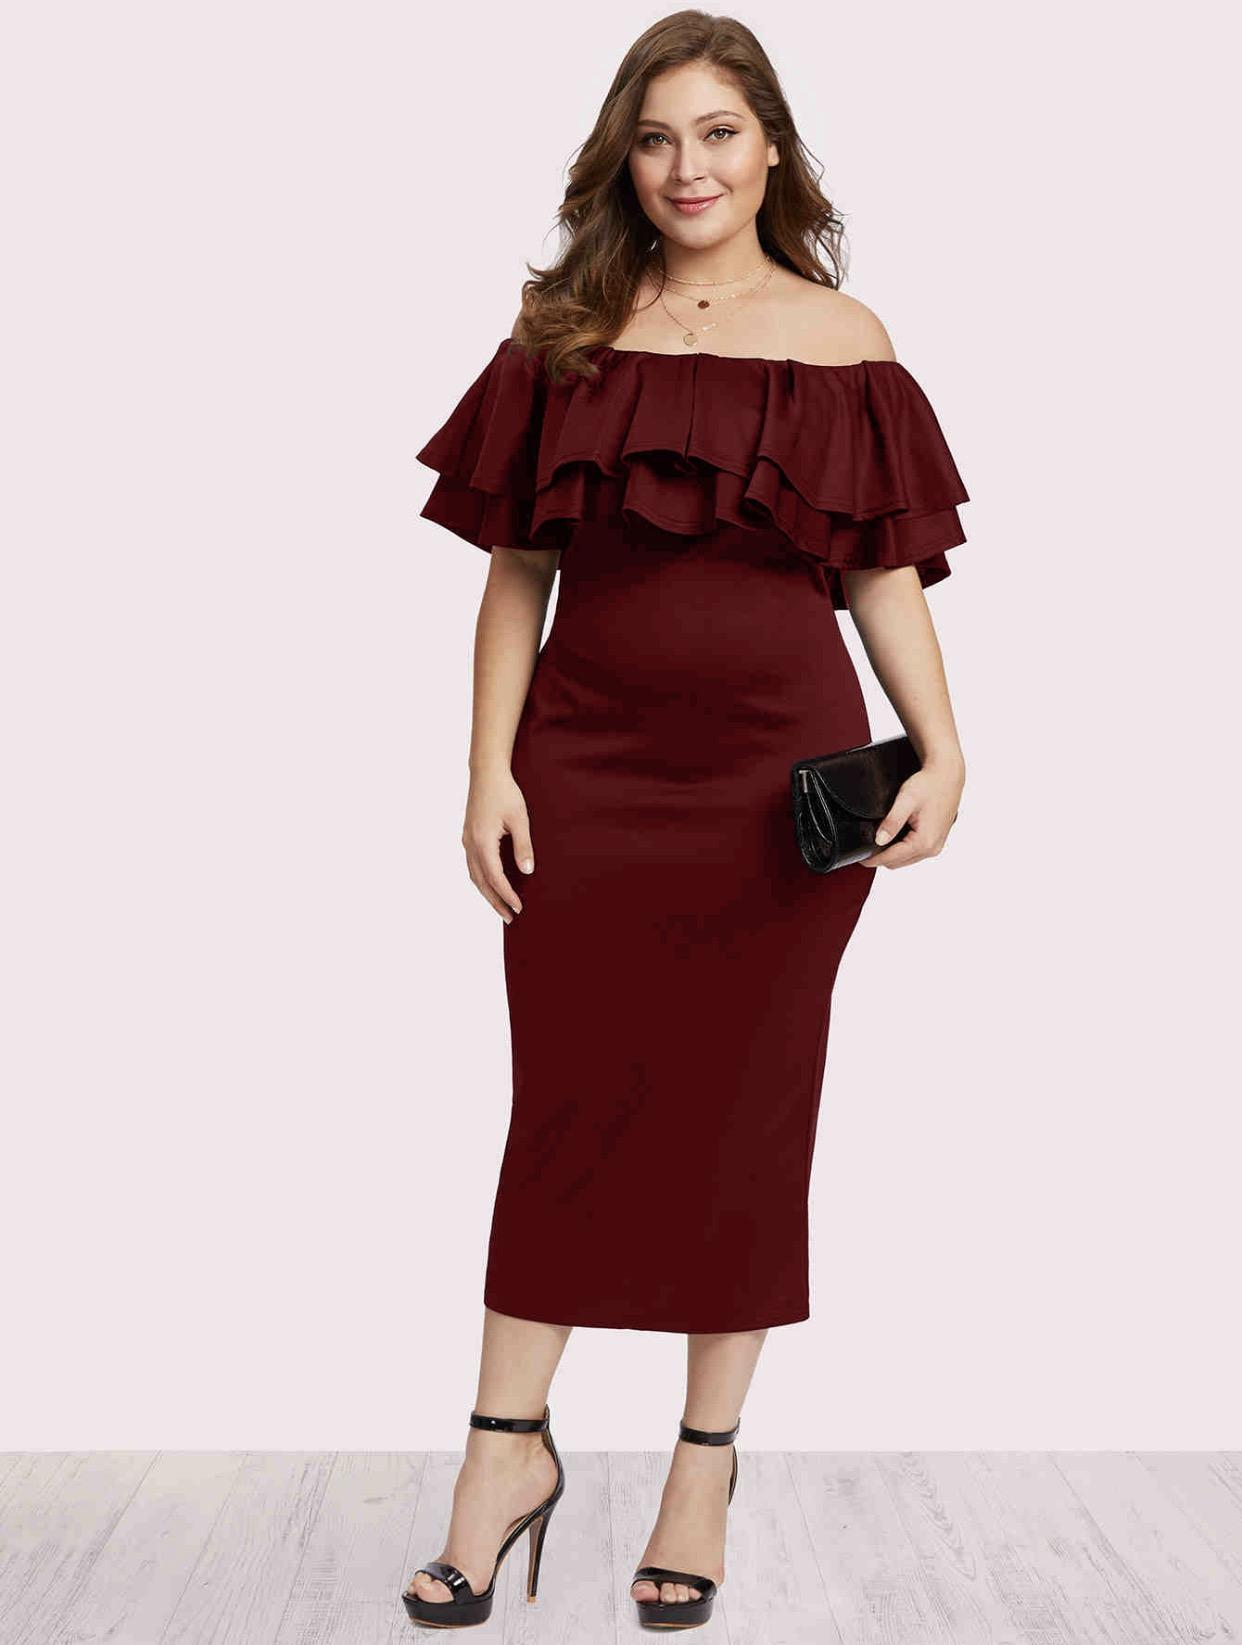 2121bb99c03a3 Plus Size Dresses for sale - Plus Size Maxi Dress Online Deals ...